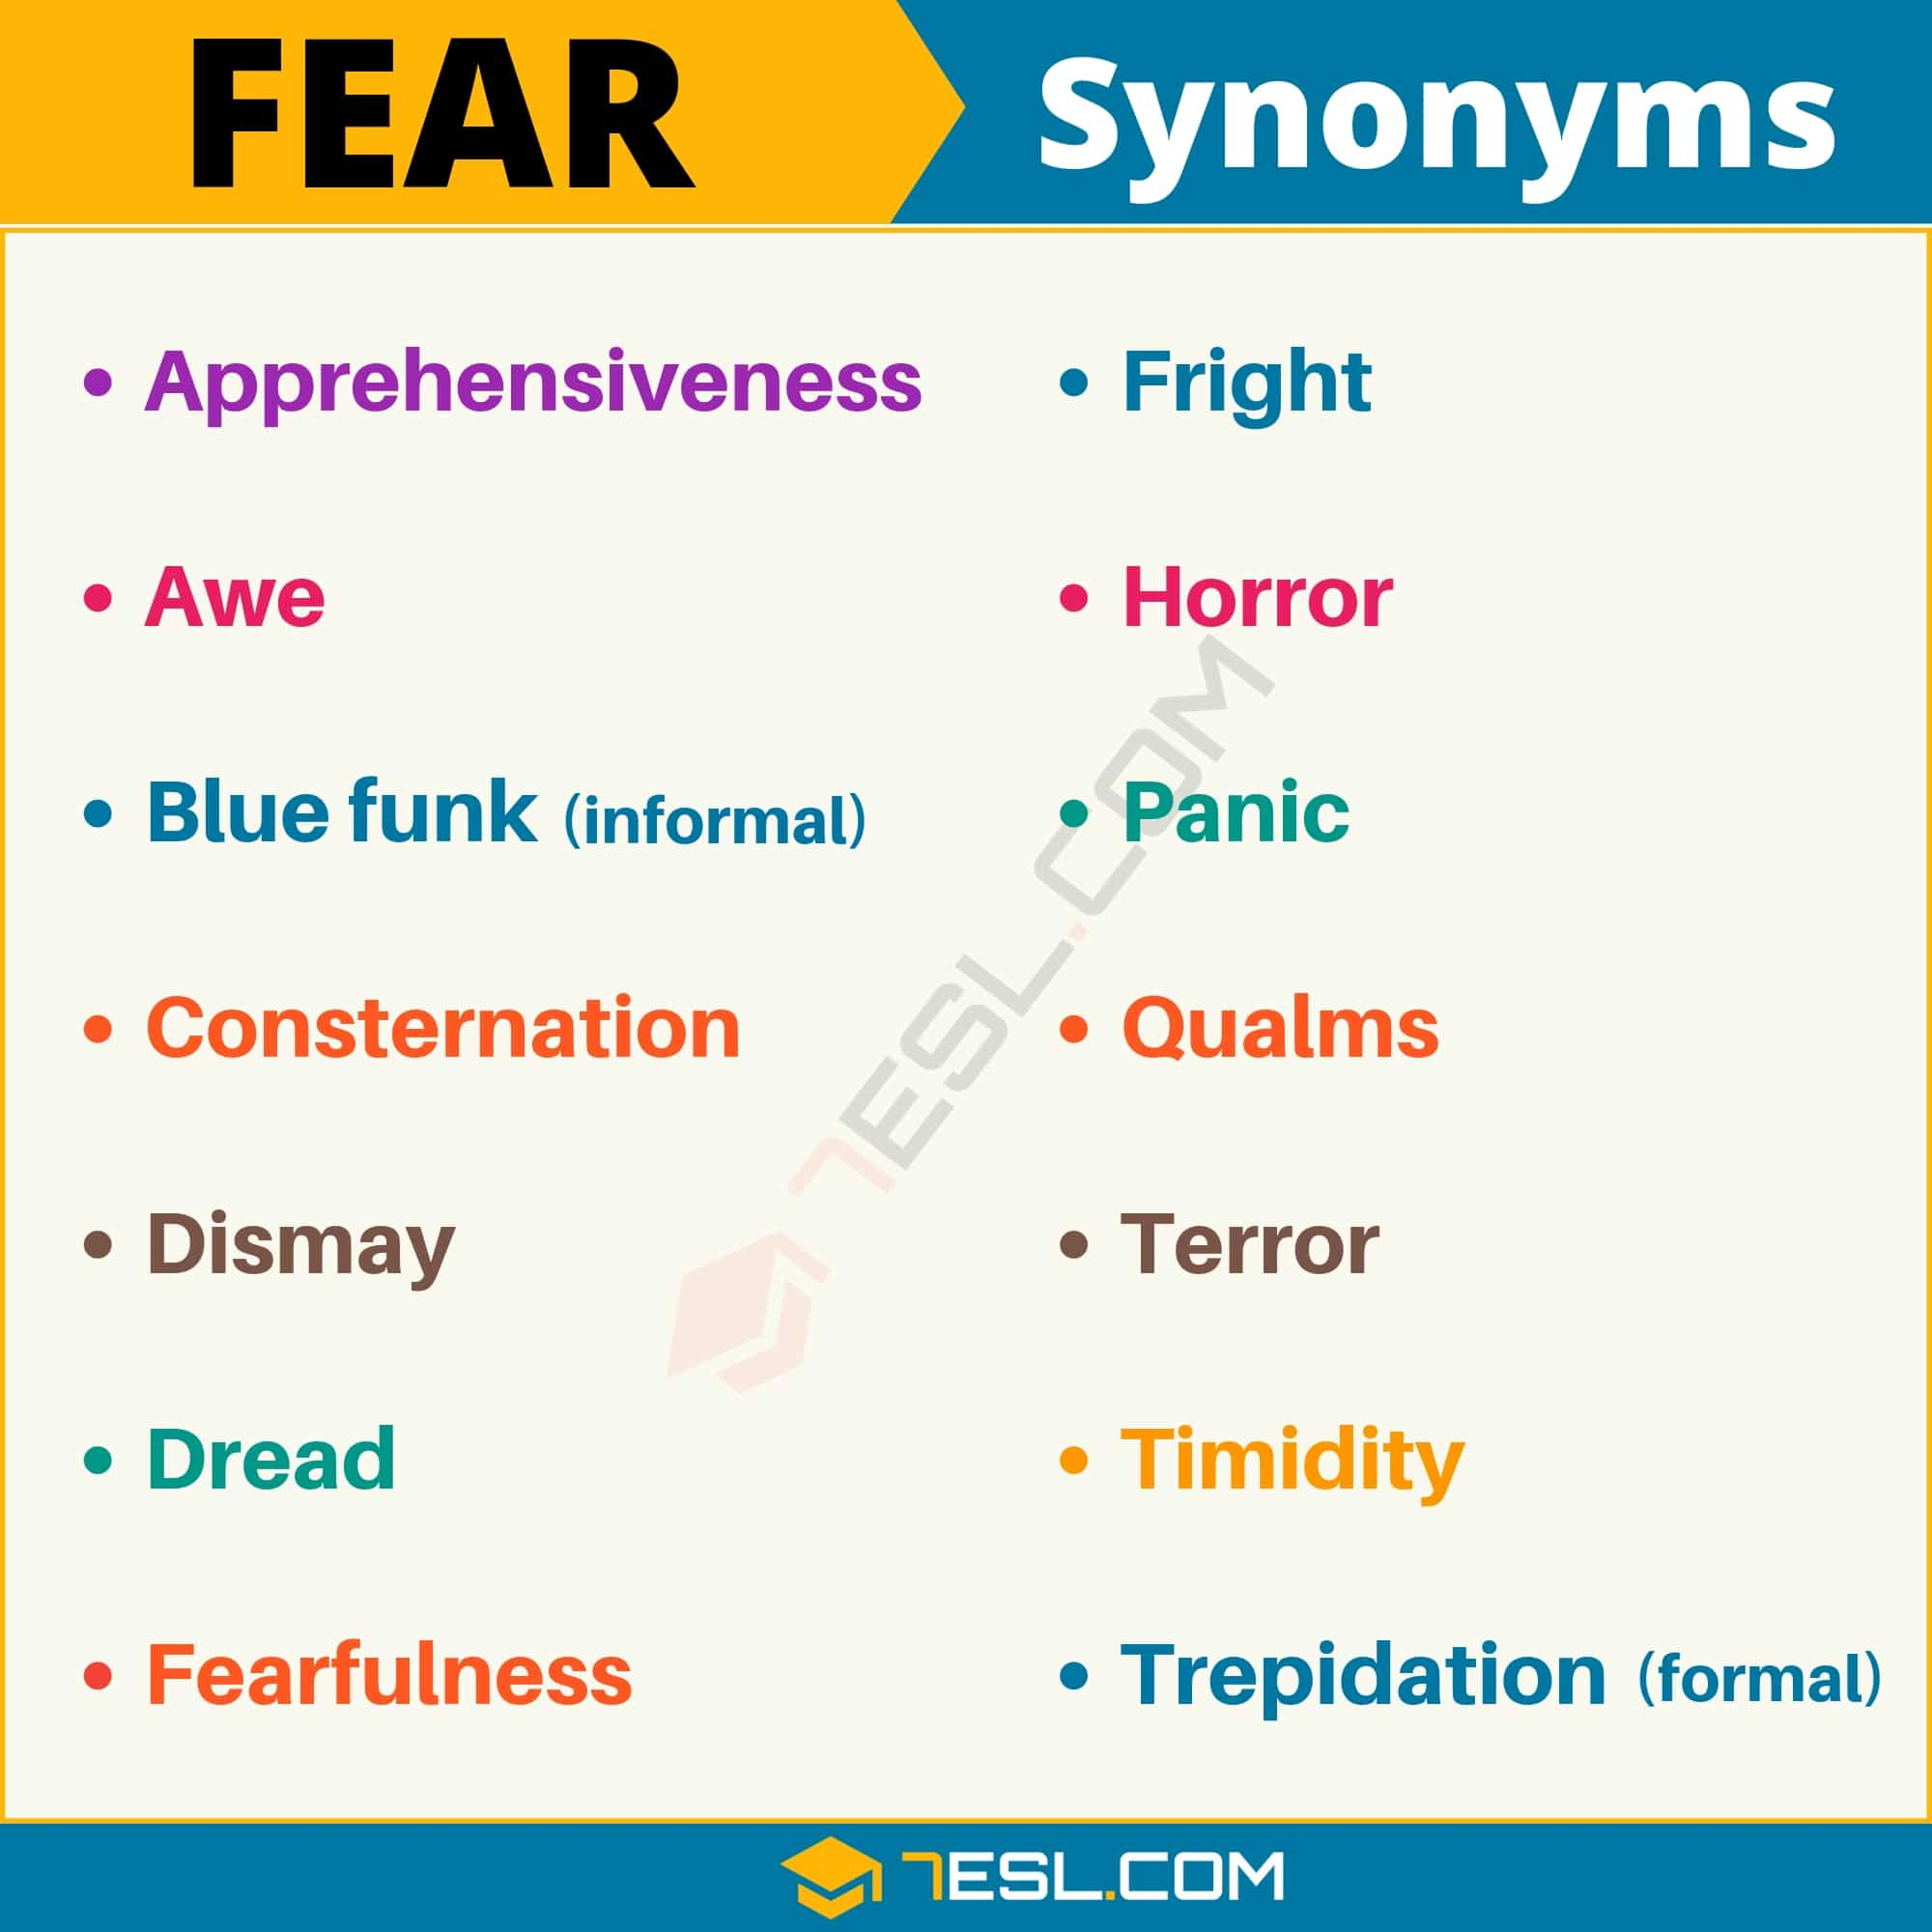 FEAR Synonym: List of Synonyms for Fear with Useful Examples